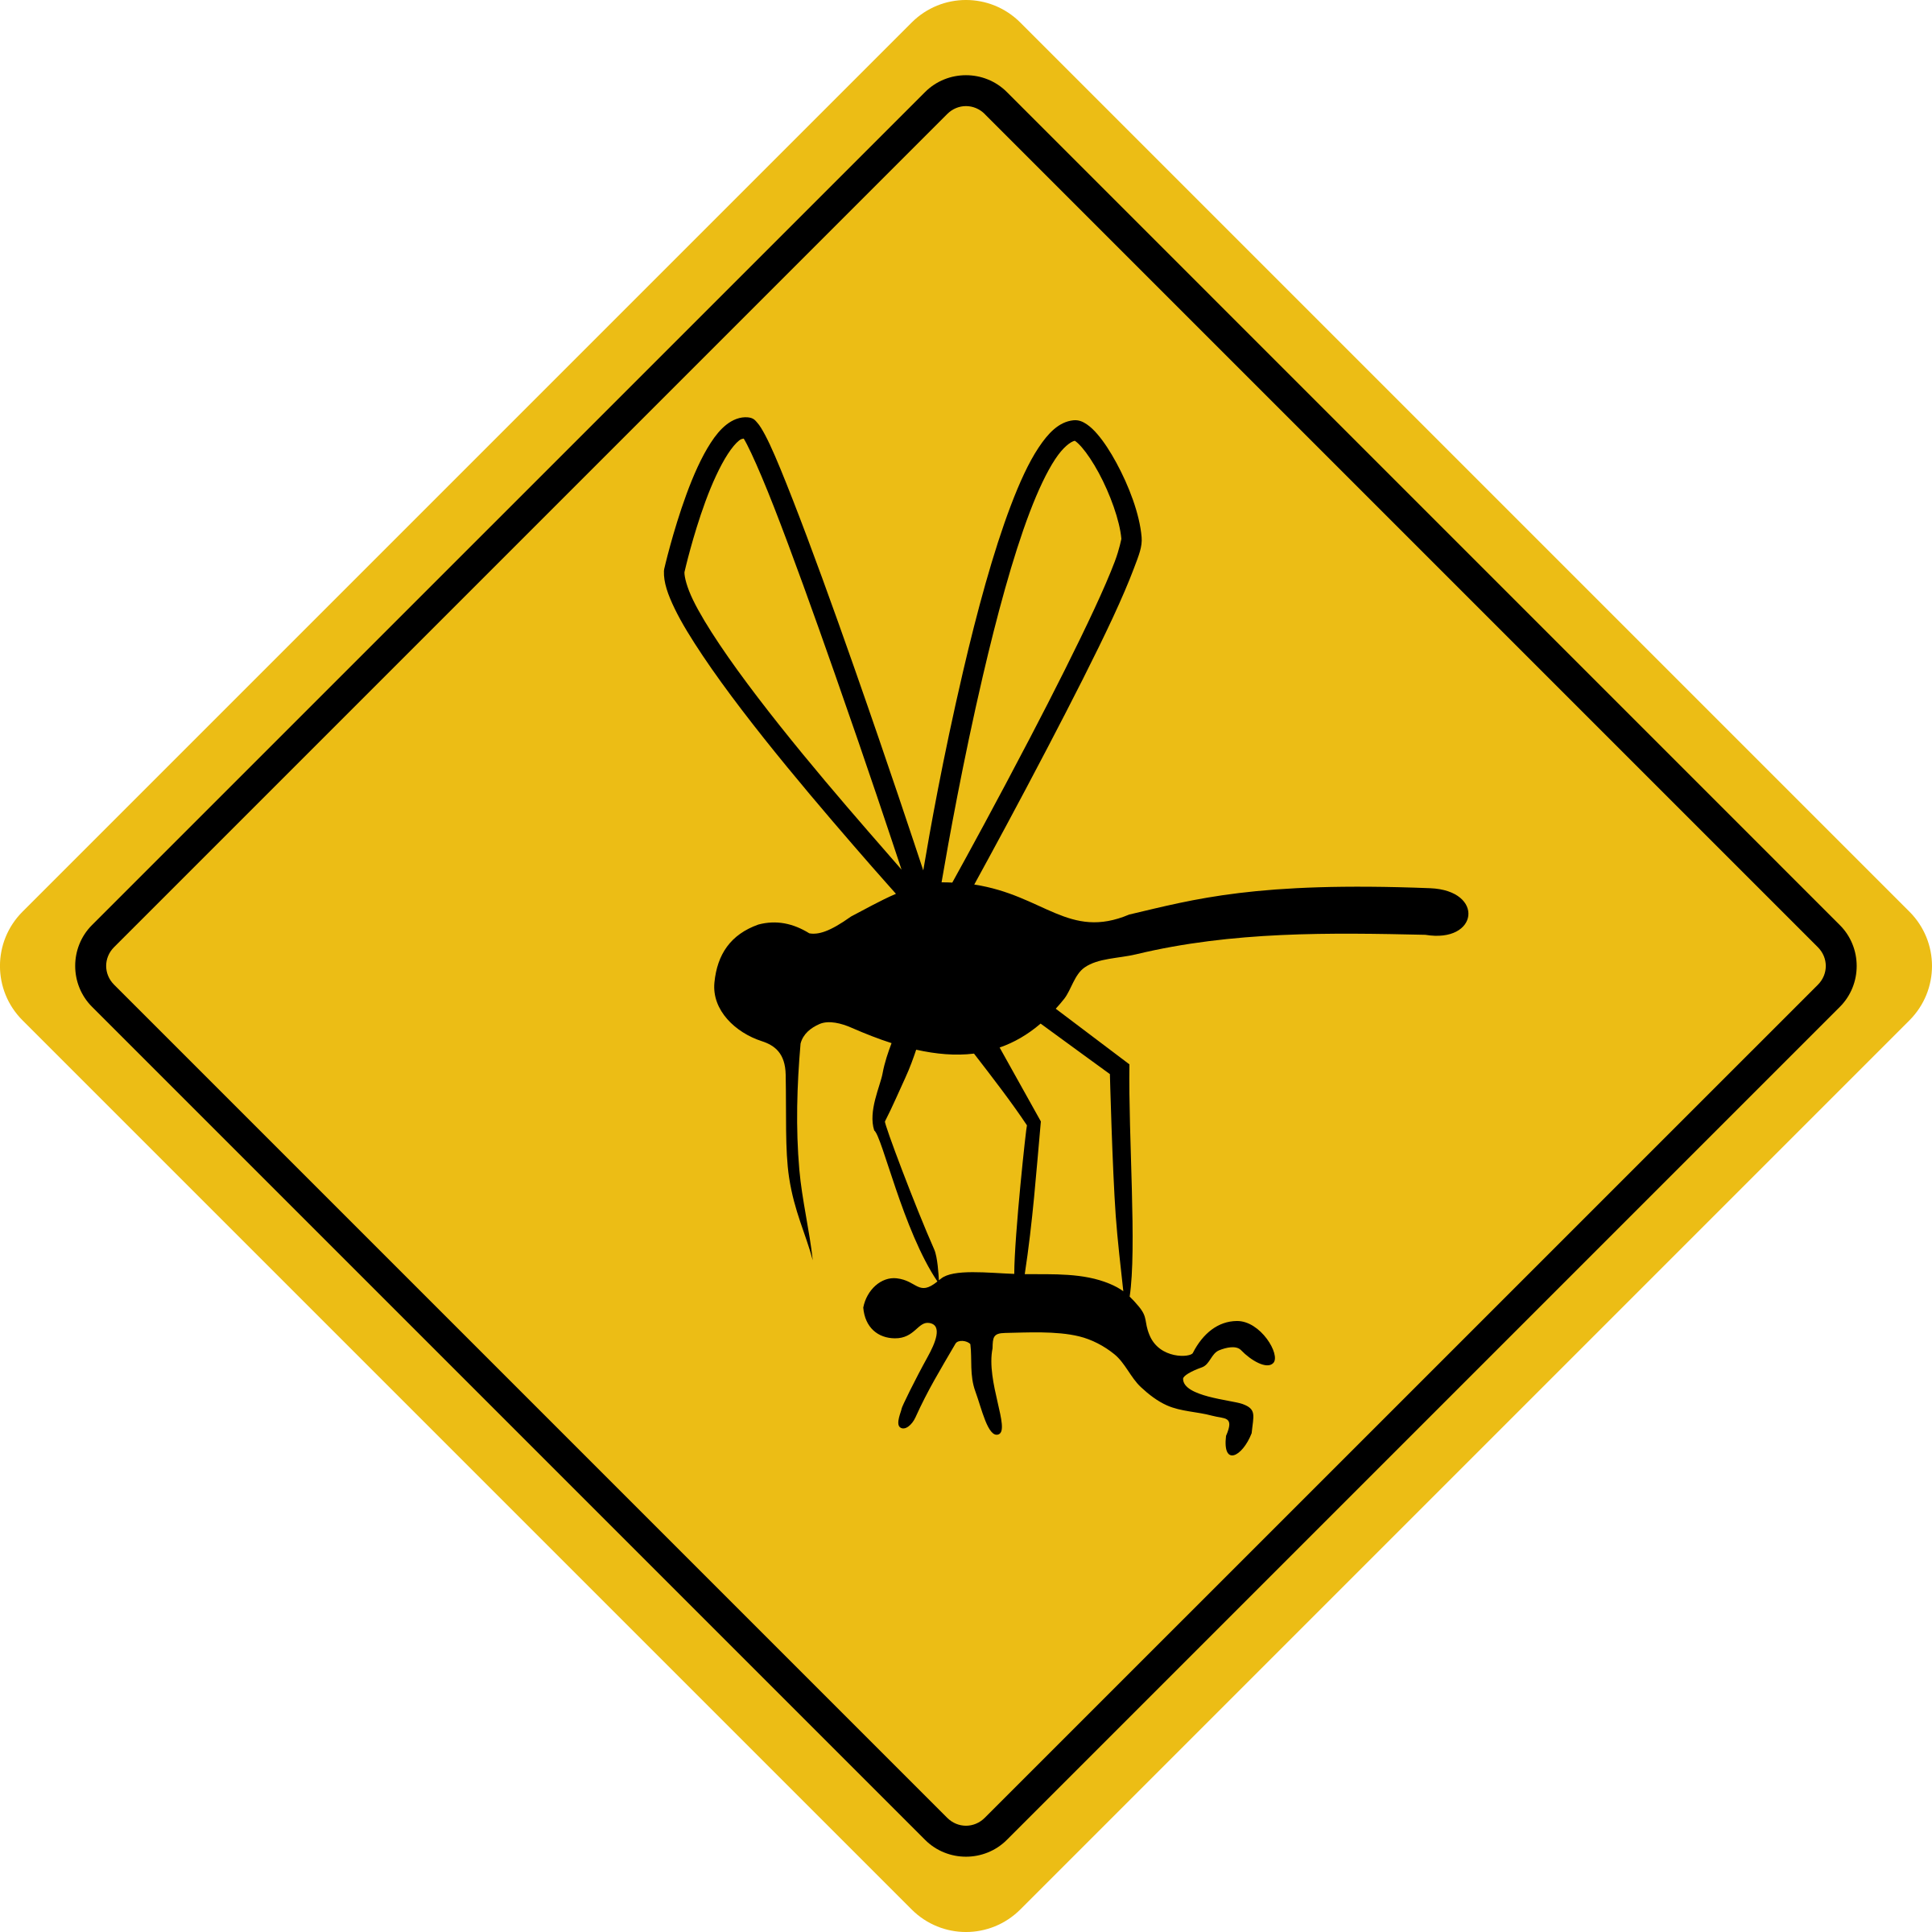 Mosquito clipart 7 clipart